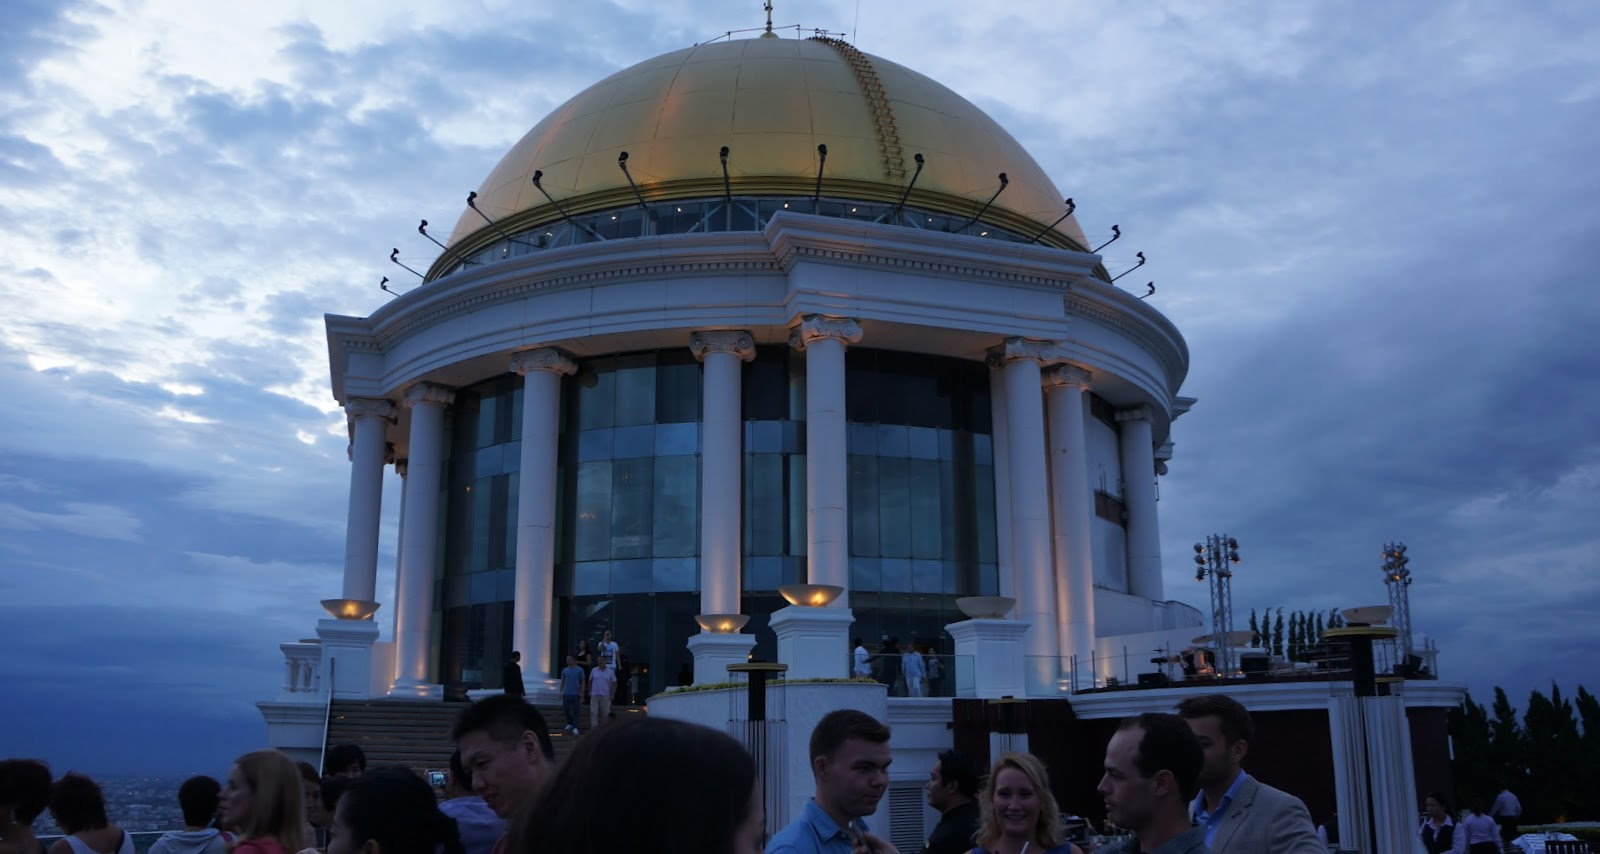 The golden dome of Lebua State Tower. The skybar has a strict dress code, make sure you dress appropriately or you might be denied from entering